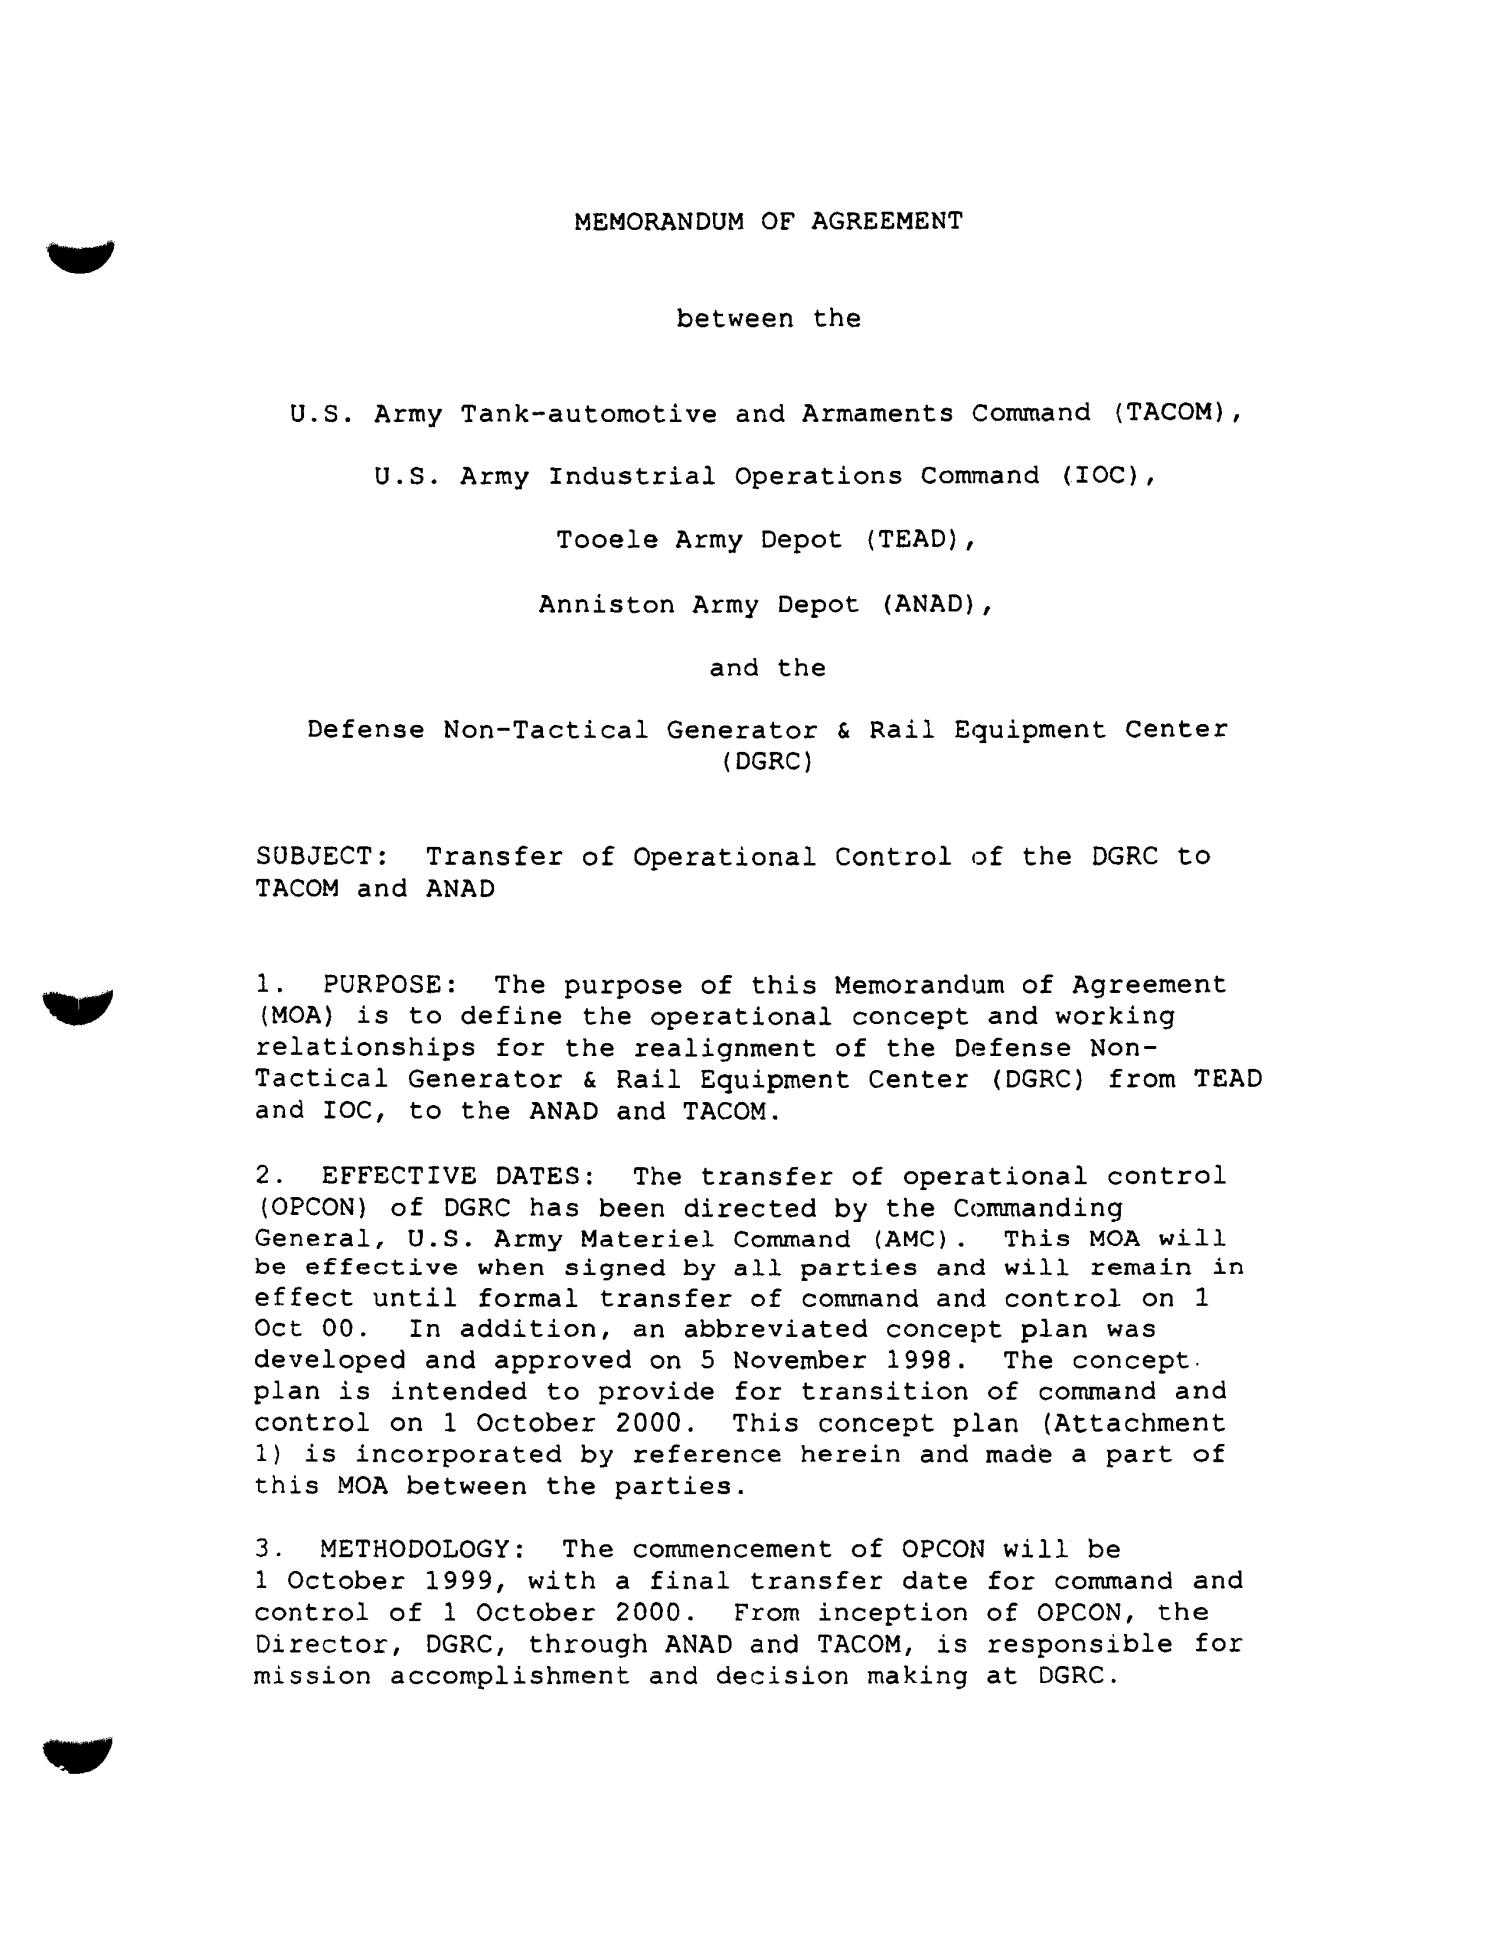 Anniston army depot combat vehicle support center installation anniston army depot combat vehicle support center installation familiarization reference book page 28 of 33 digital library platinumwayz